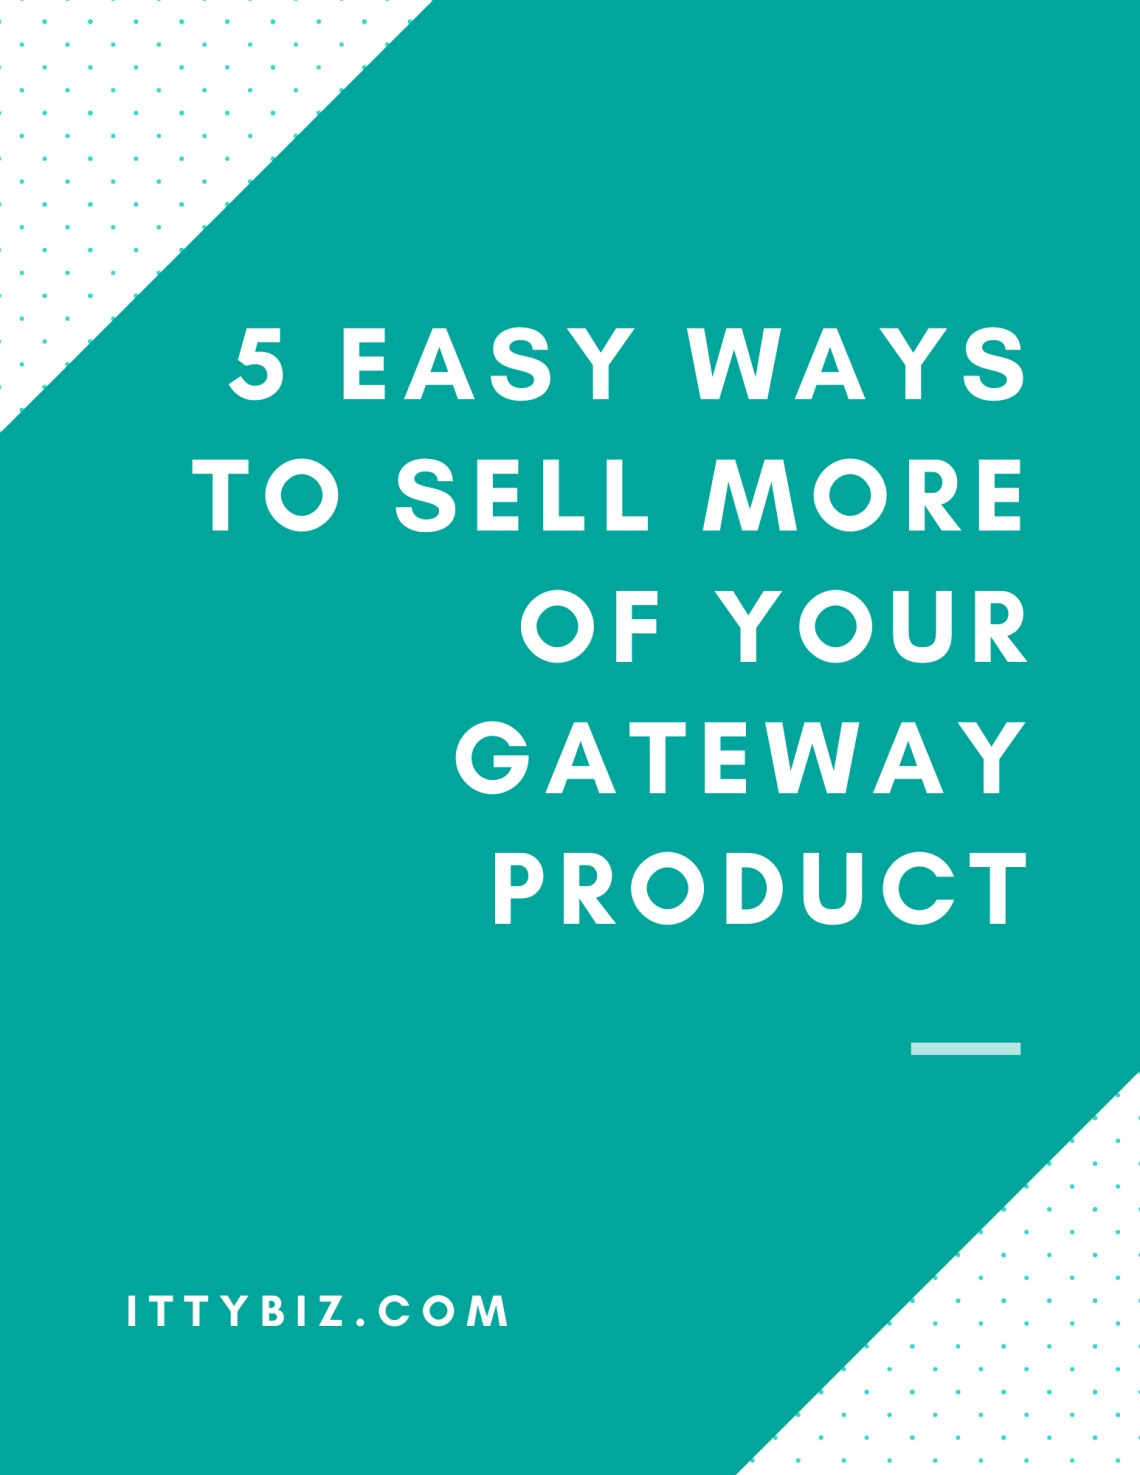 5 Easy Ways To Sell More Of Your Gateway Product